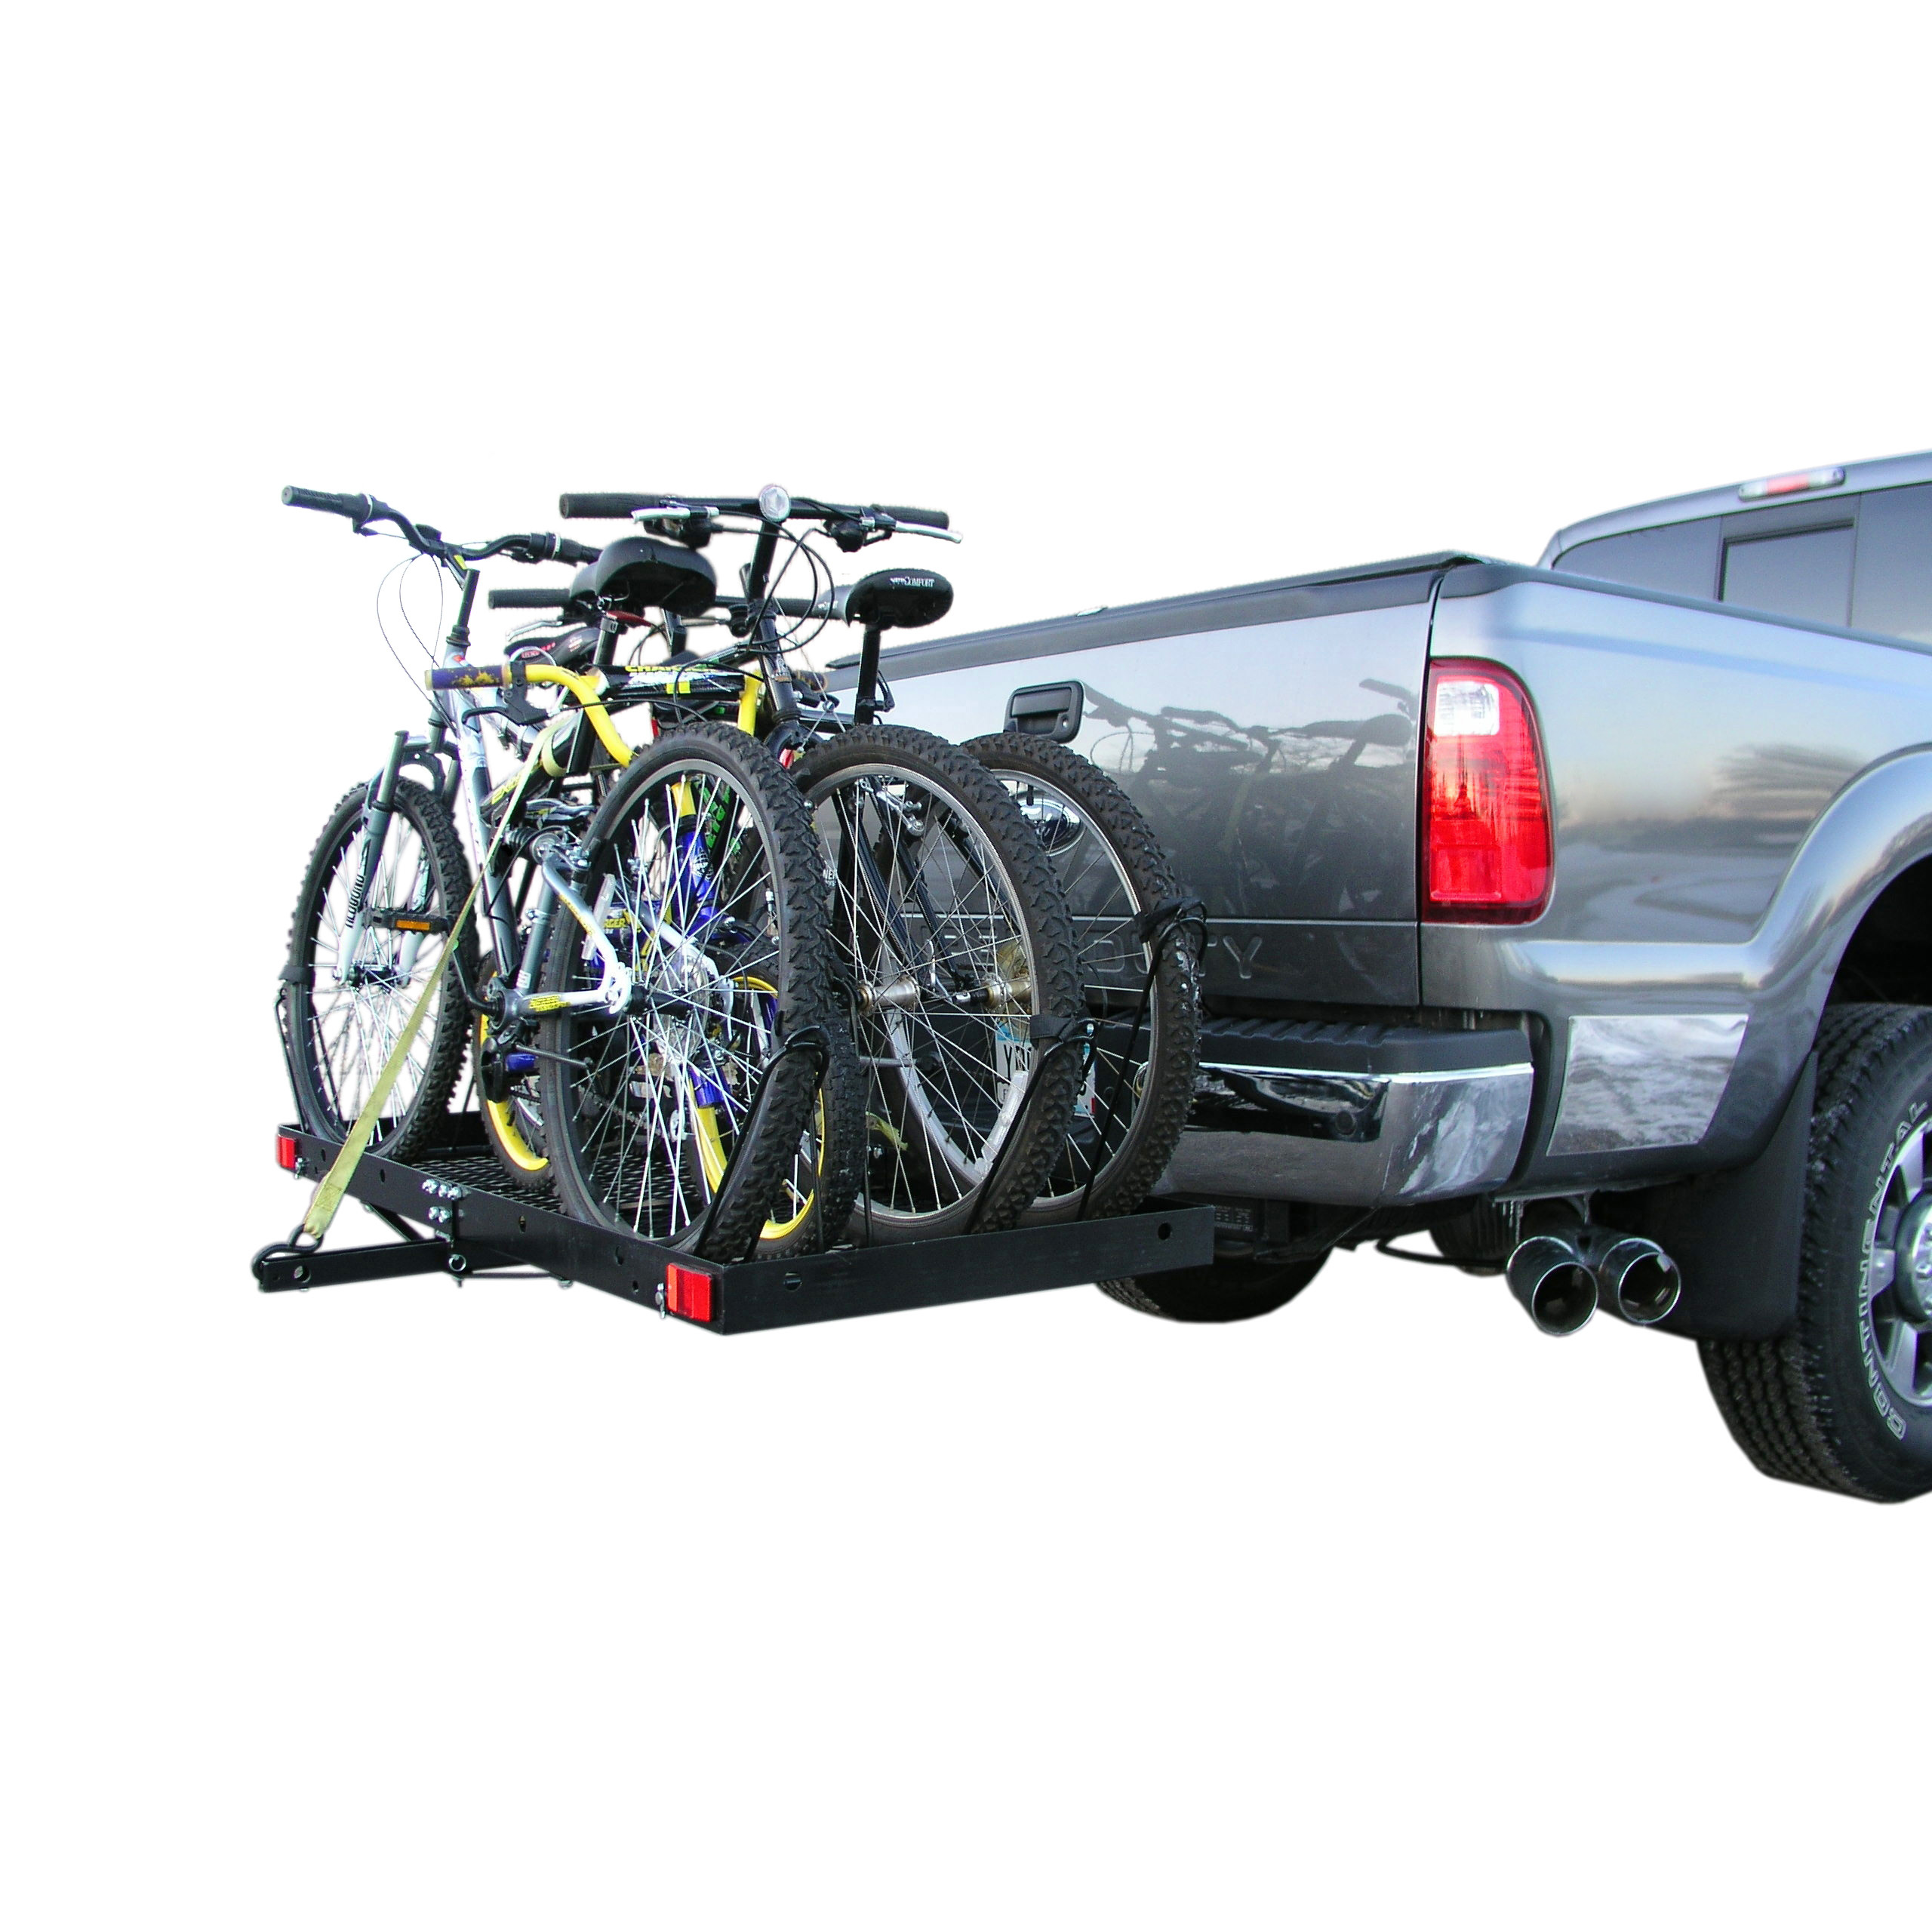 Bike rack and cargo carrier ridgid 18 volt battery charger